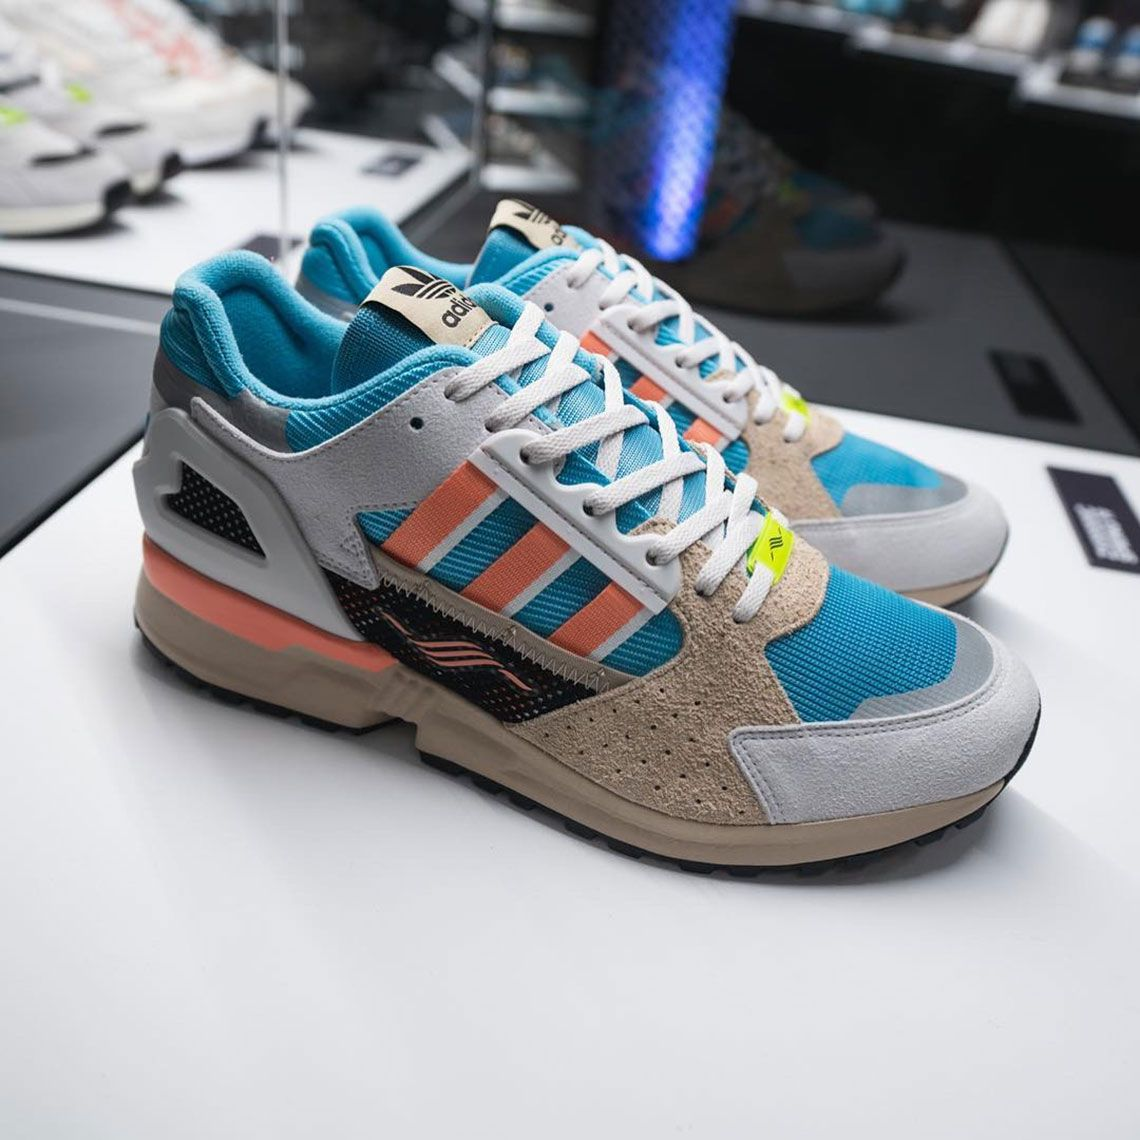 online retailer d1766 c9c24 First Look At The adidas ZX 10.000 C